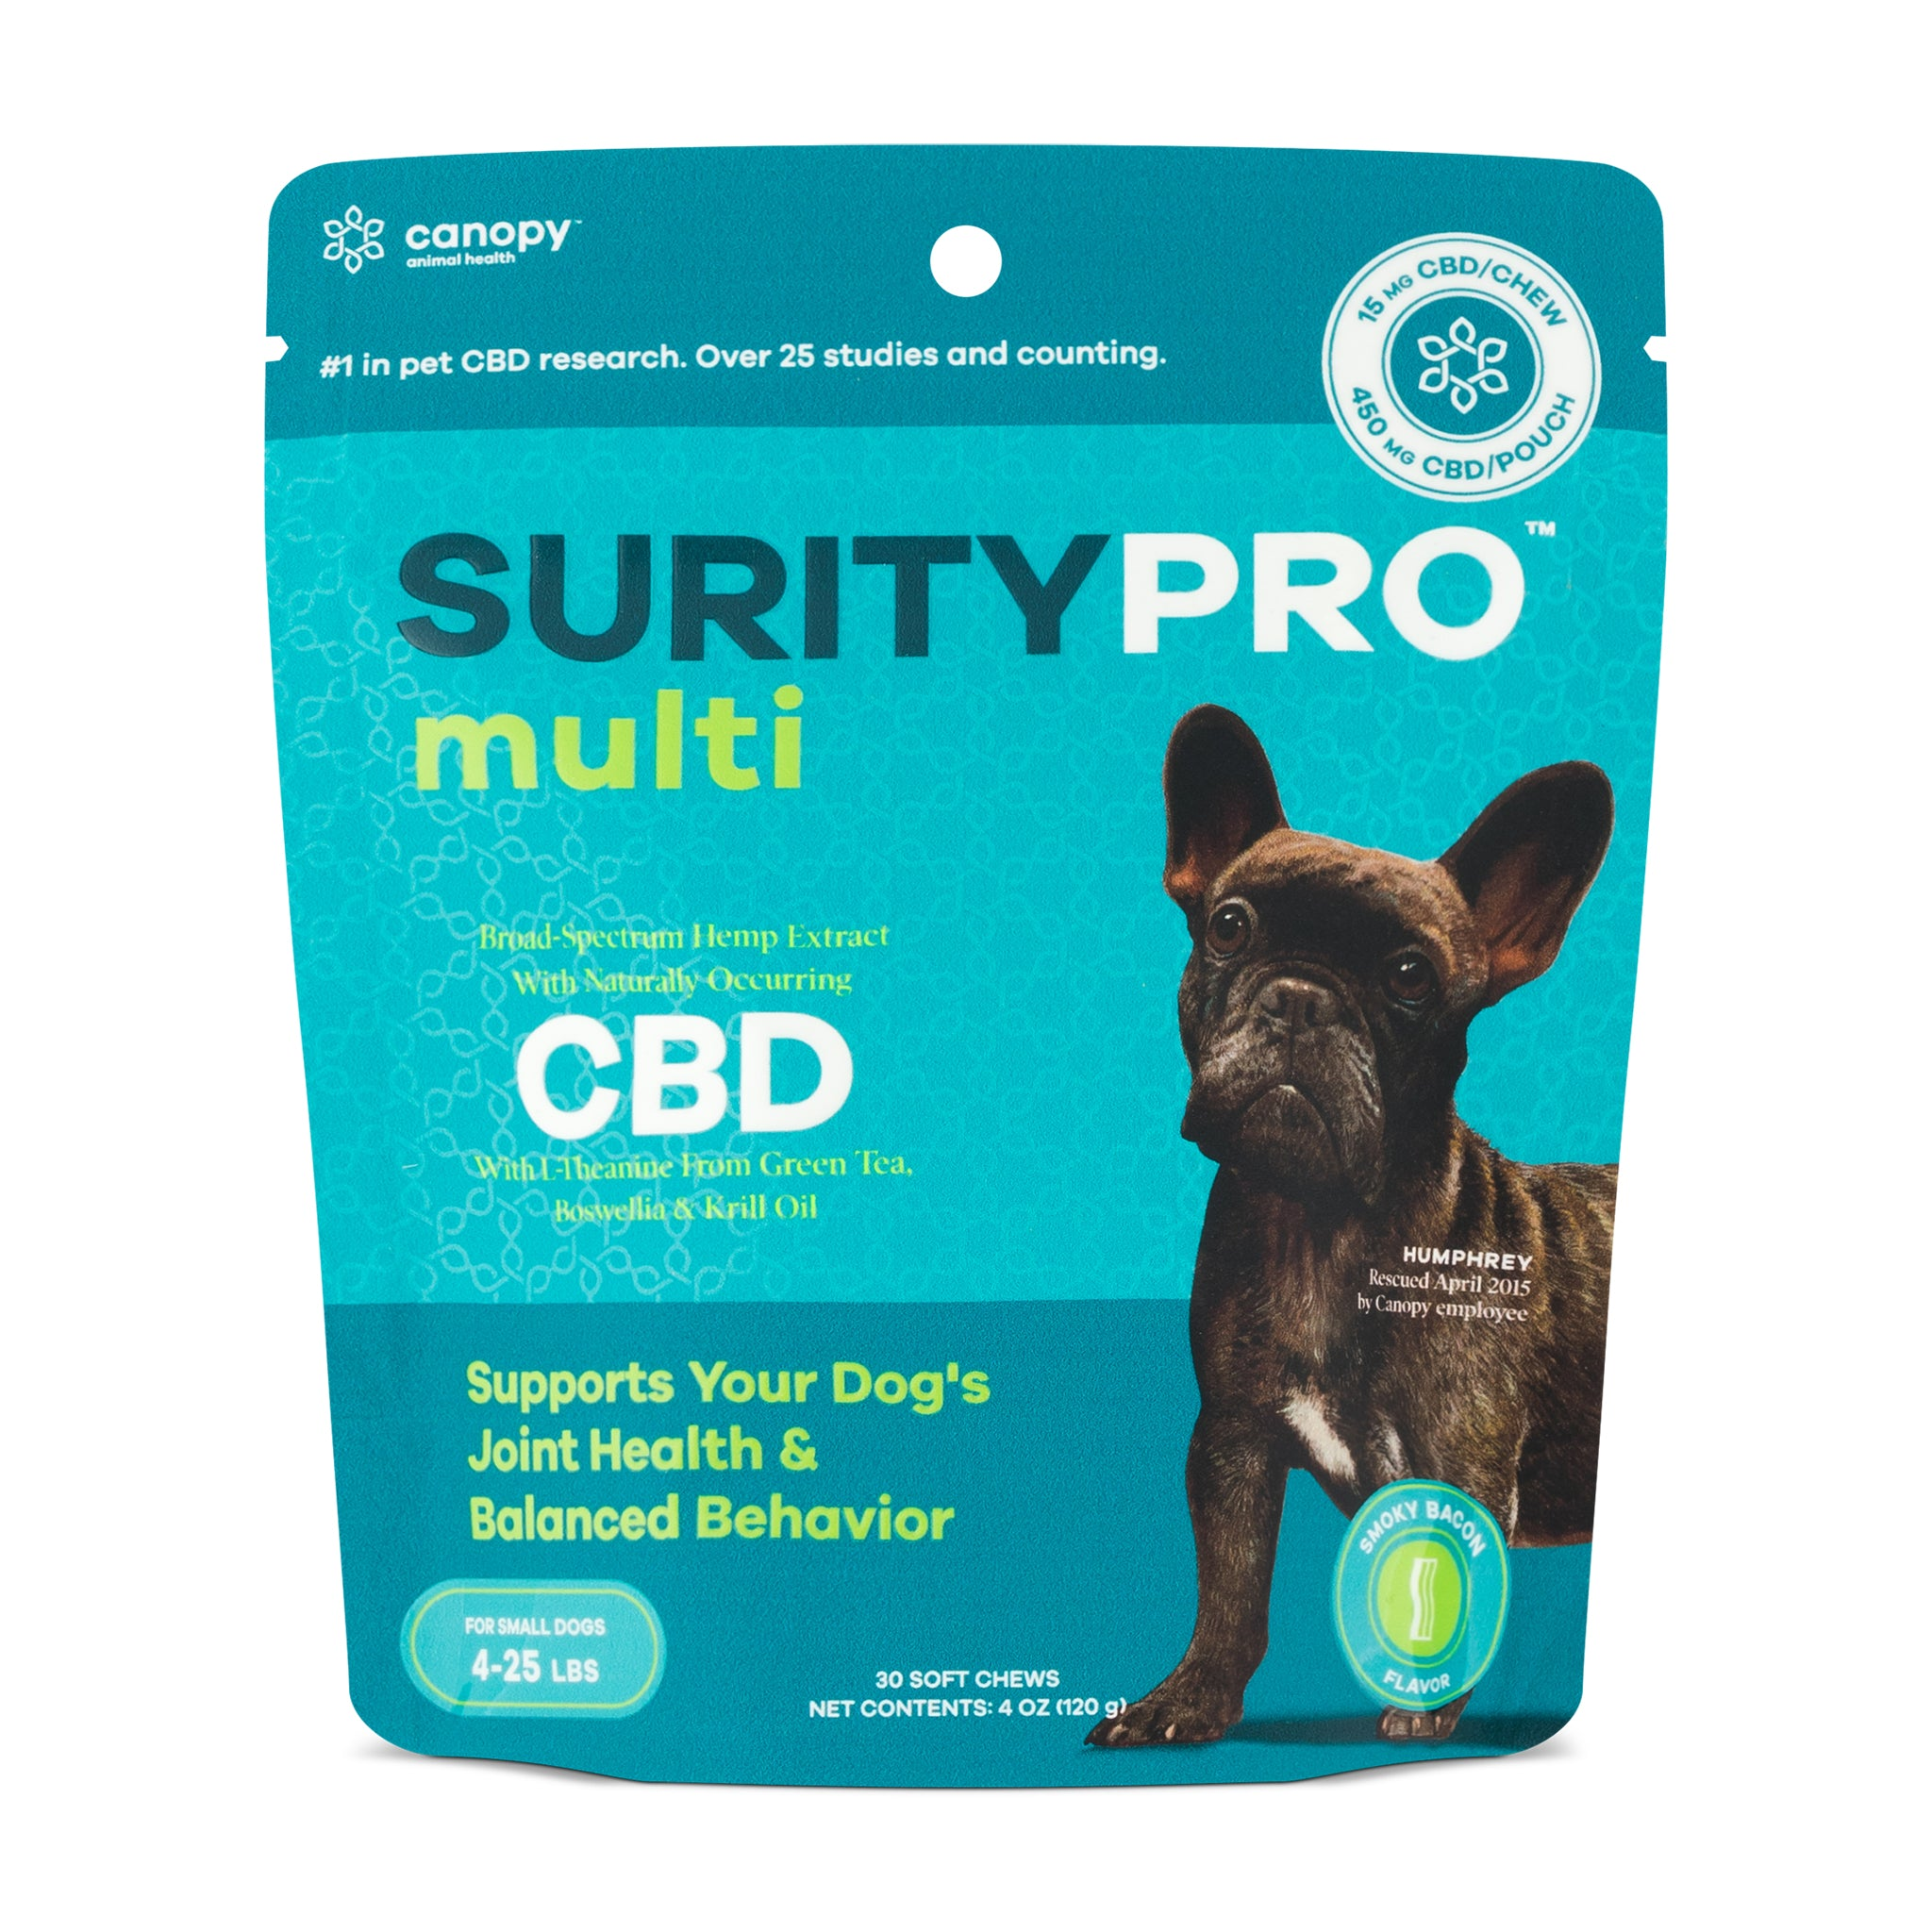 SurityPro Multi Smoky Bacon Flavor Soft Chews